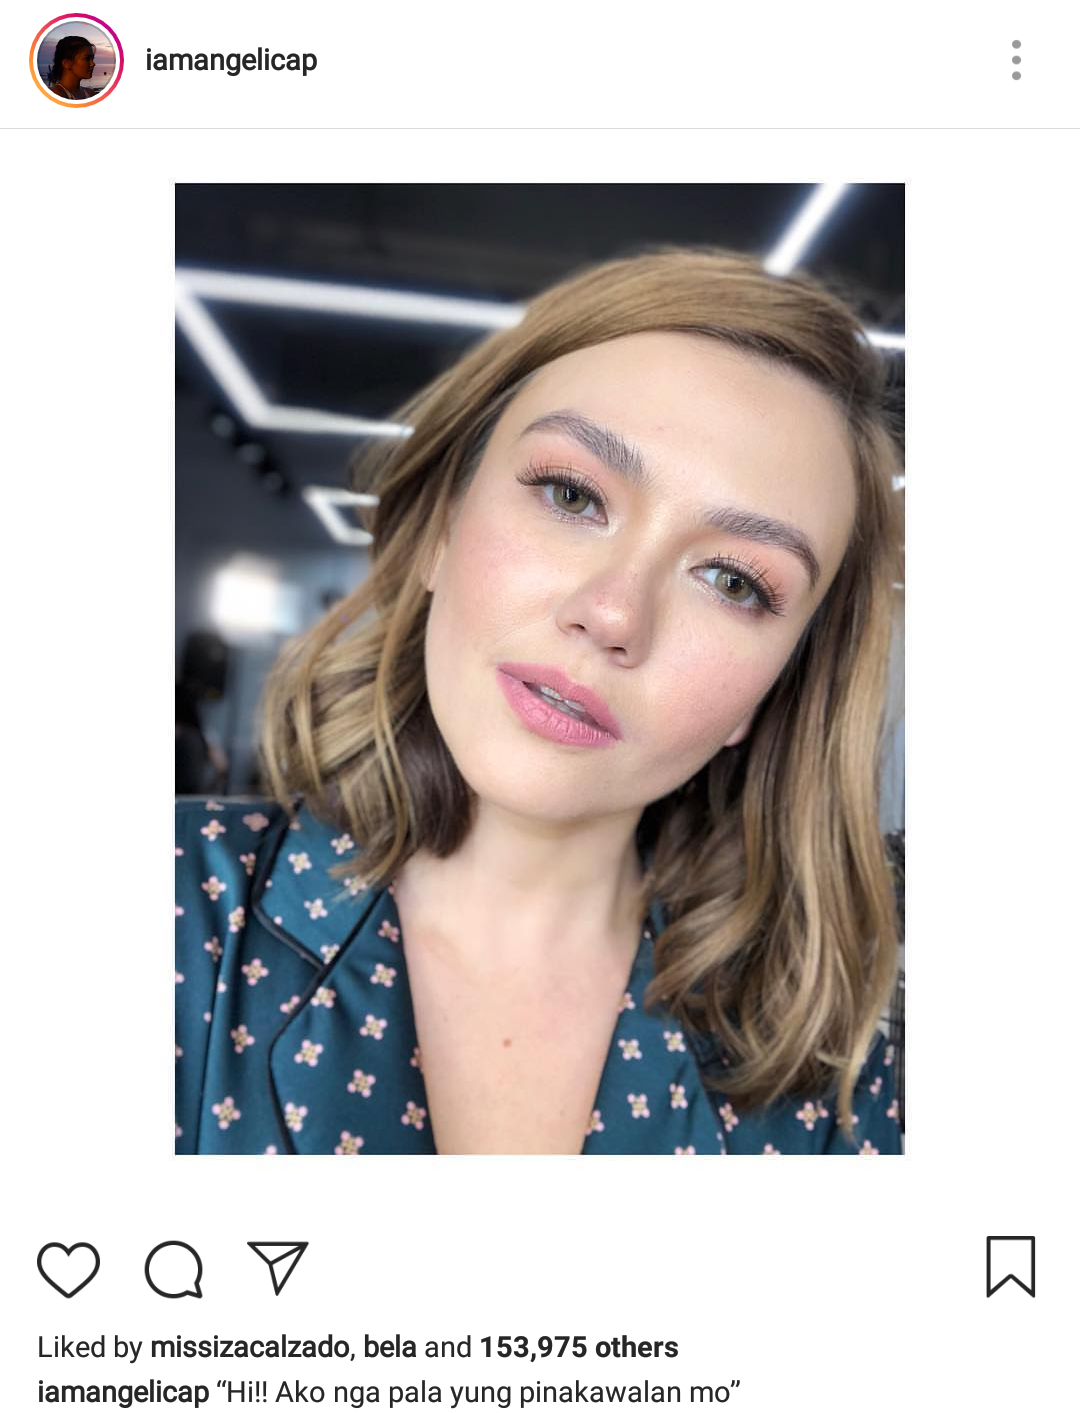 Fashion Pulis Insta Scoop To Whom Is Angelica Panganiban